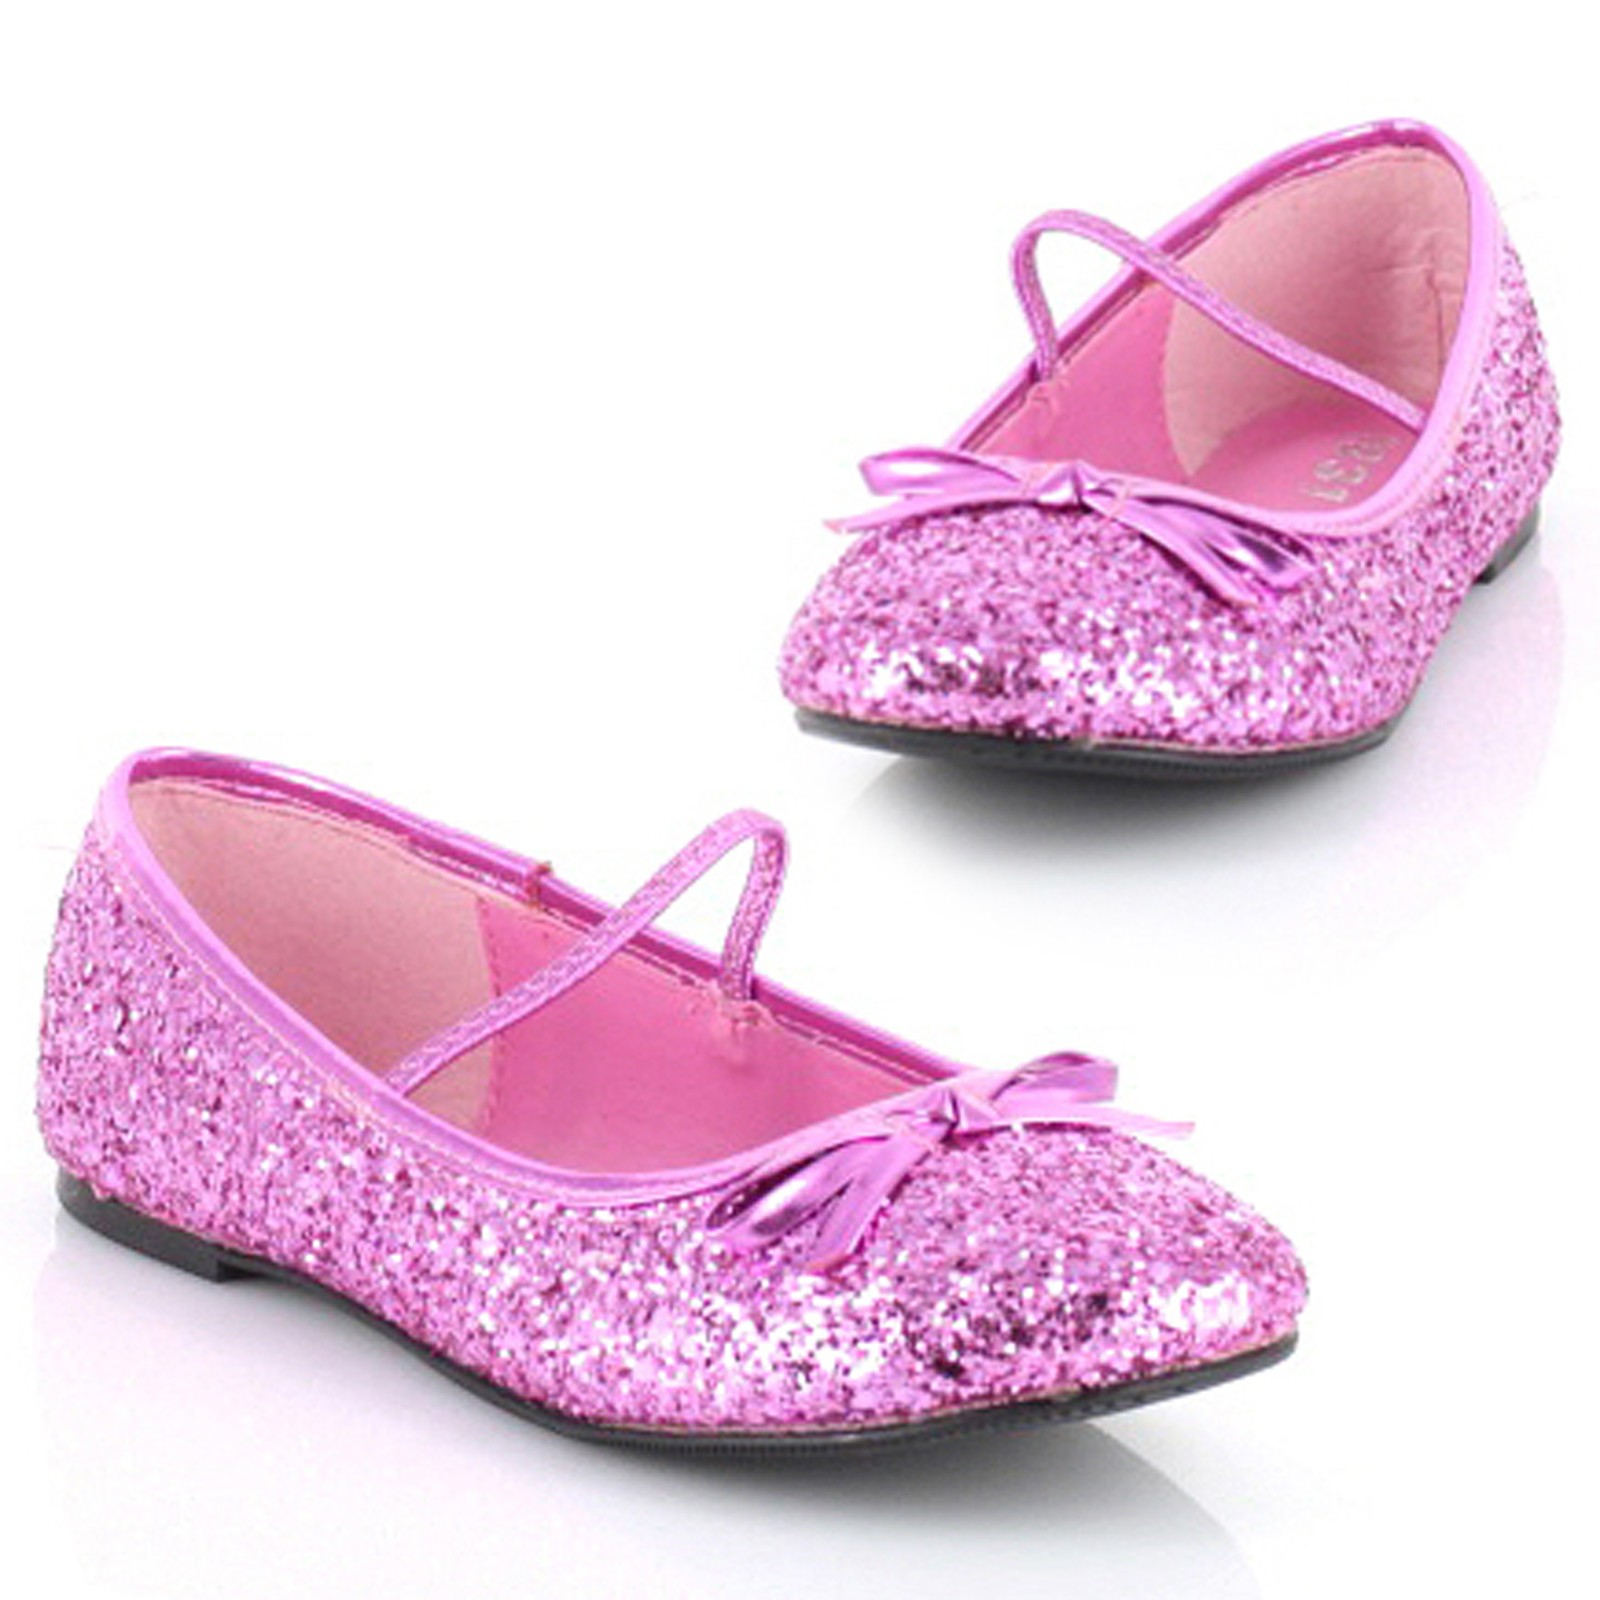 Kids' occasion & party shoes Our kids' party shoes were made for dancing. From pretty pumps and heeled shoes to luxe trainers, we have a pair to suit every mini partygoer.